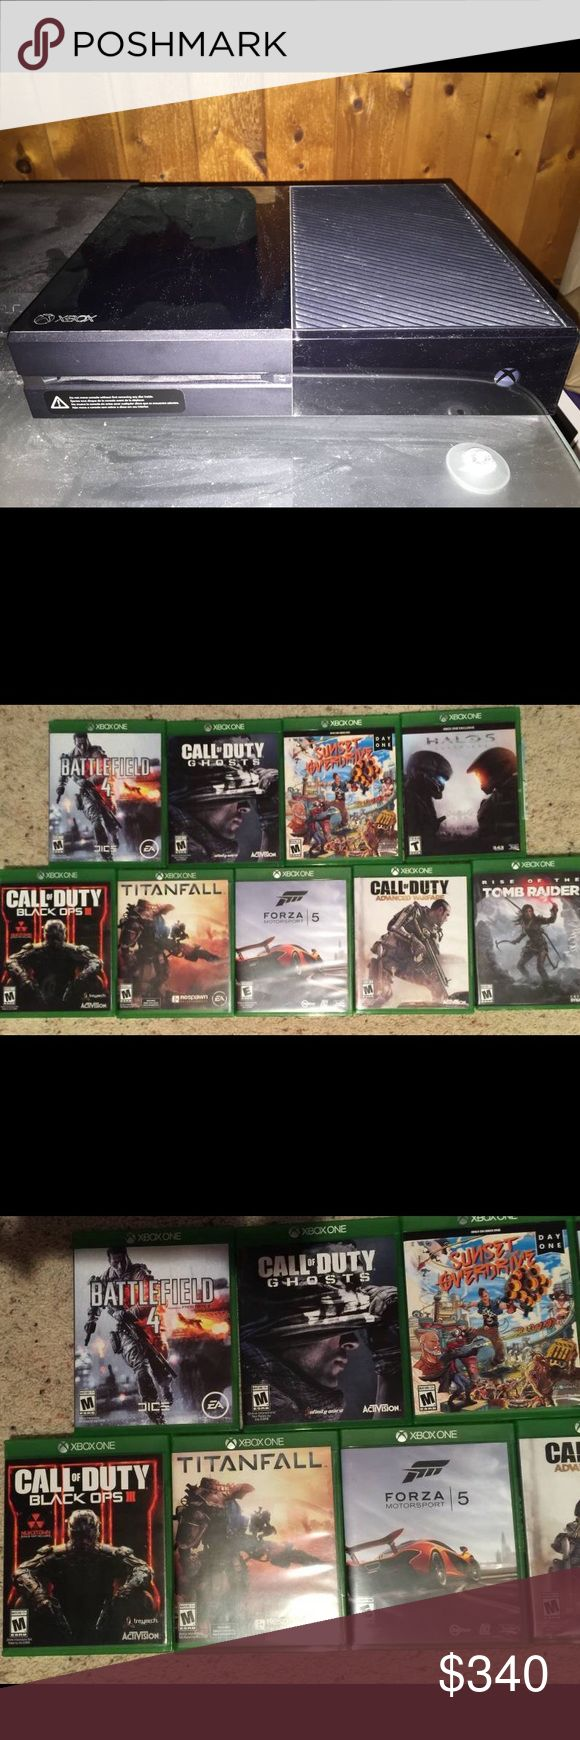 Xbox One day 1 edition 500GB console system+games Make me a reasonable offer!  I've got a excellent condition Xbox One day 1 edition 500GB console system.   Games: Rise of the Tomb Raiders  Halo 5 Sunset Overdrive -Day 1 edition Battlefield 4 Call of Duty Ghosts Forza 5 Call of Duty Advanced Warfare Titanfall Call of Duty Black Ops 3 Xbox 1 Other